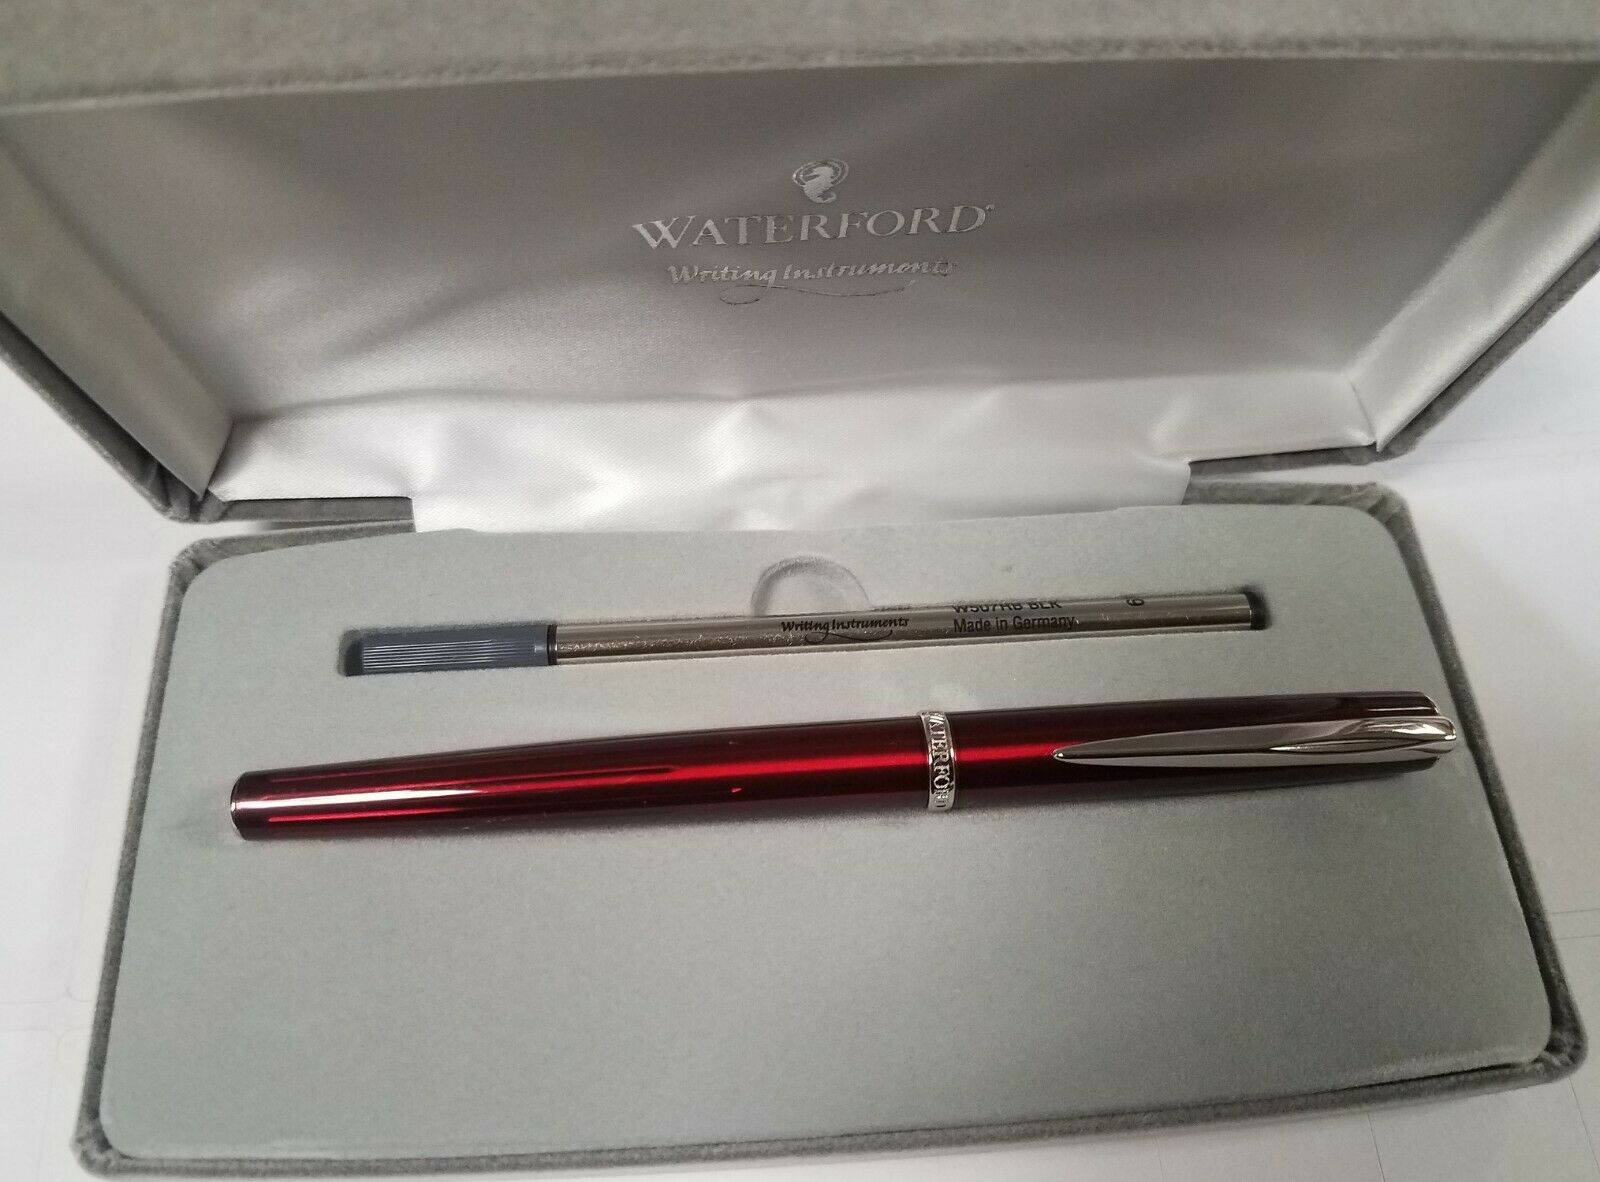 Waterford Marquis Claria Rhodium Rollerball Pen New In Box